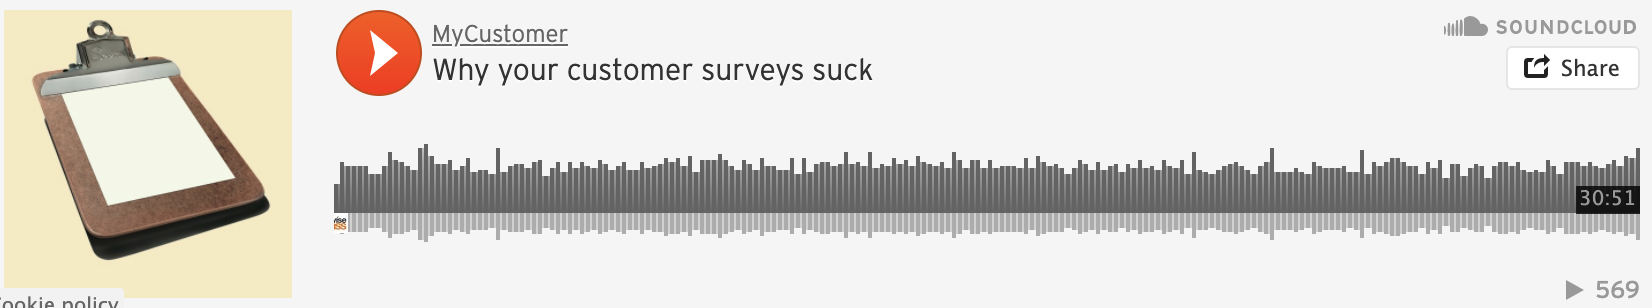 Why Your Customer Surveys Suck and What To Do About It